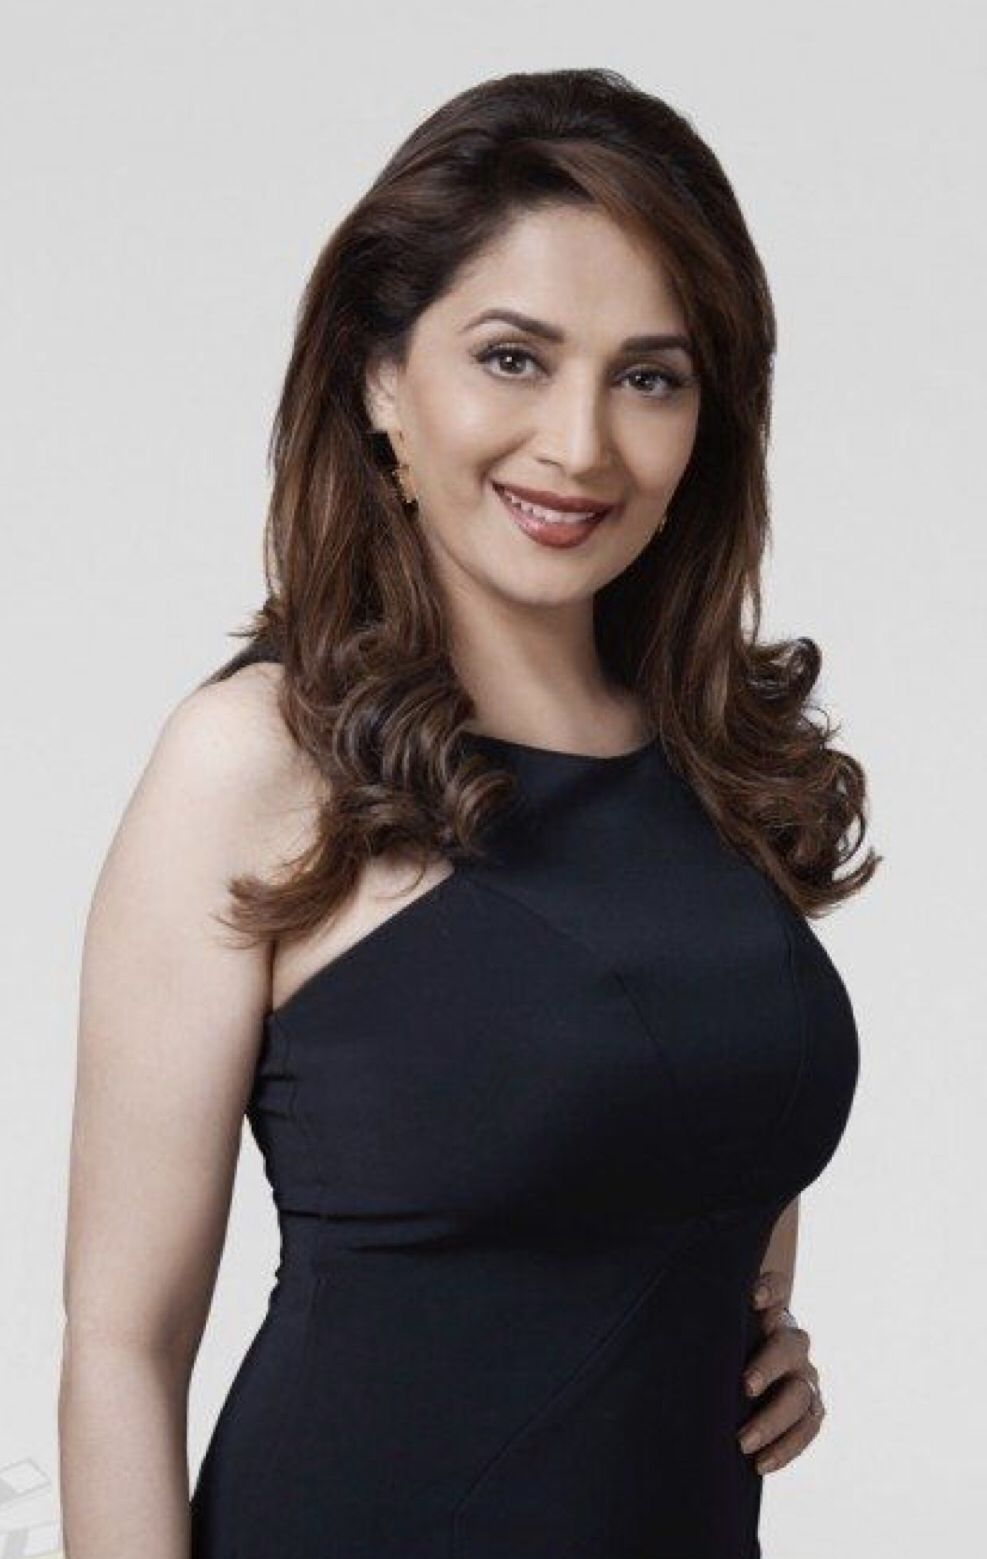 120 Madhuri Dixit Latest Pics, Full Hd Images And Photo -5424